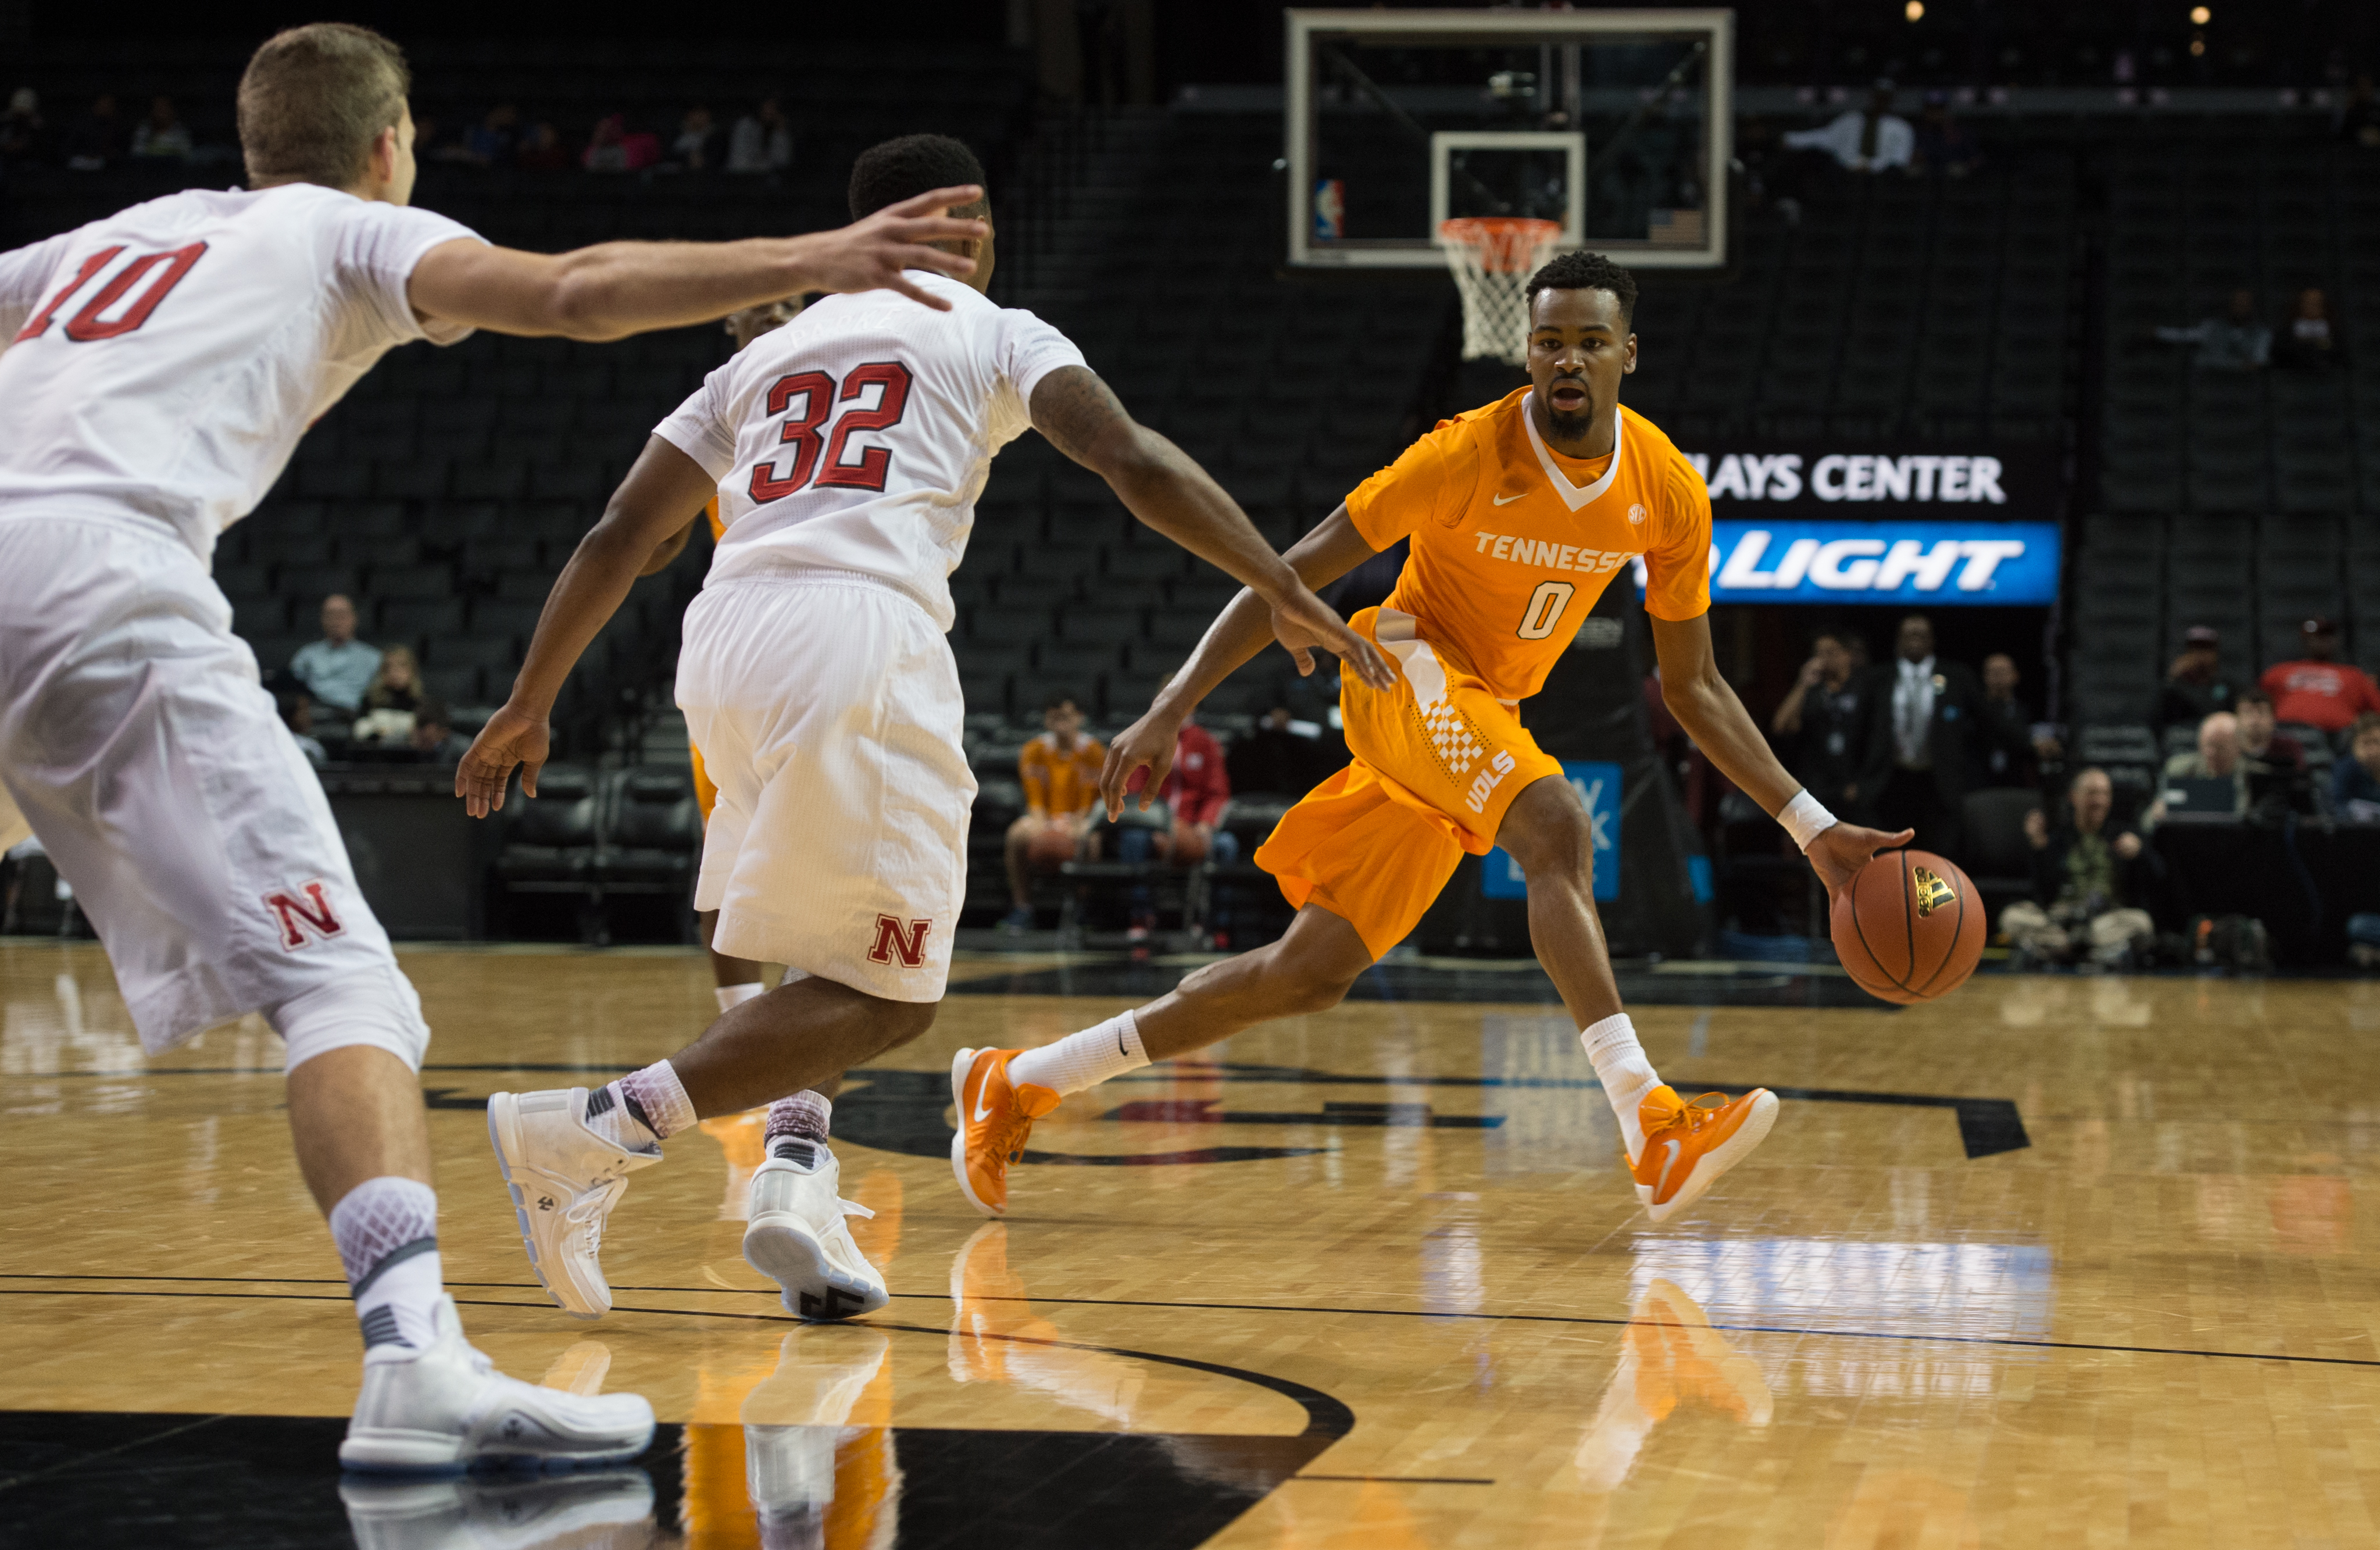 Tennessee guard Kevin Punter (0) dribbles the ball against Nebraska guard Benny Parker (32) and forward Jack McVeigh (10) during the first half of an NCAA college basketball game in the consolation game at the Barclays Center Classic, Saturday, Nov. 28, 2